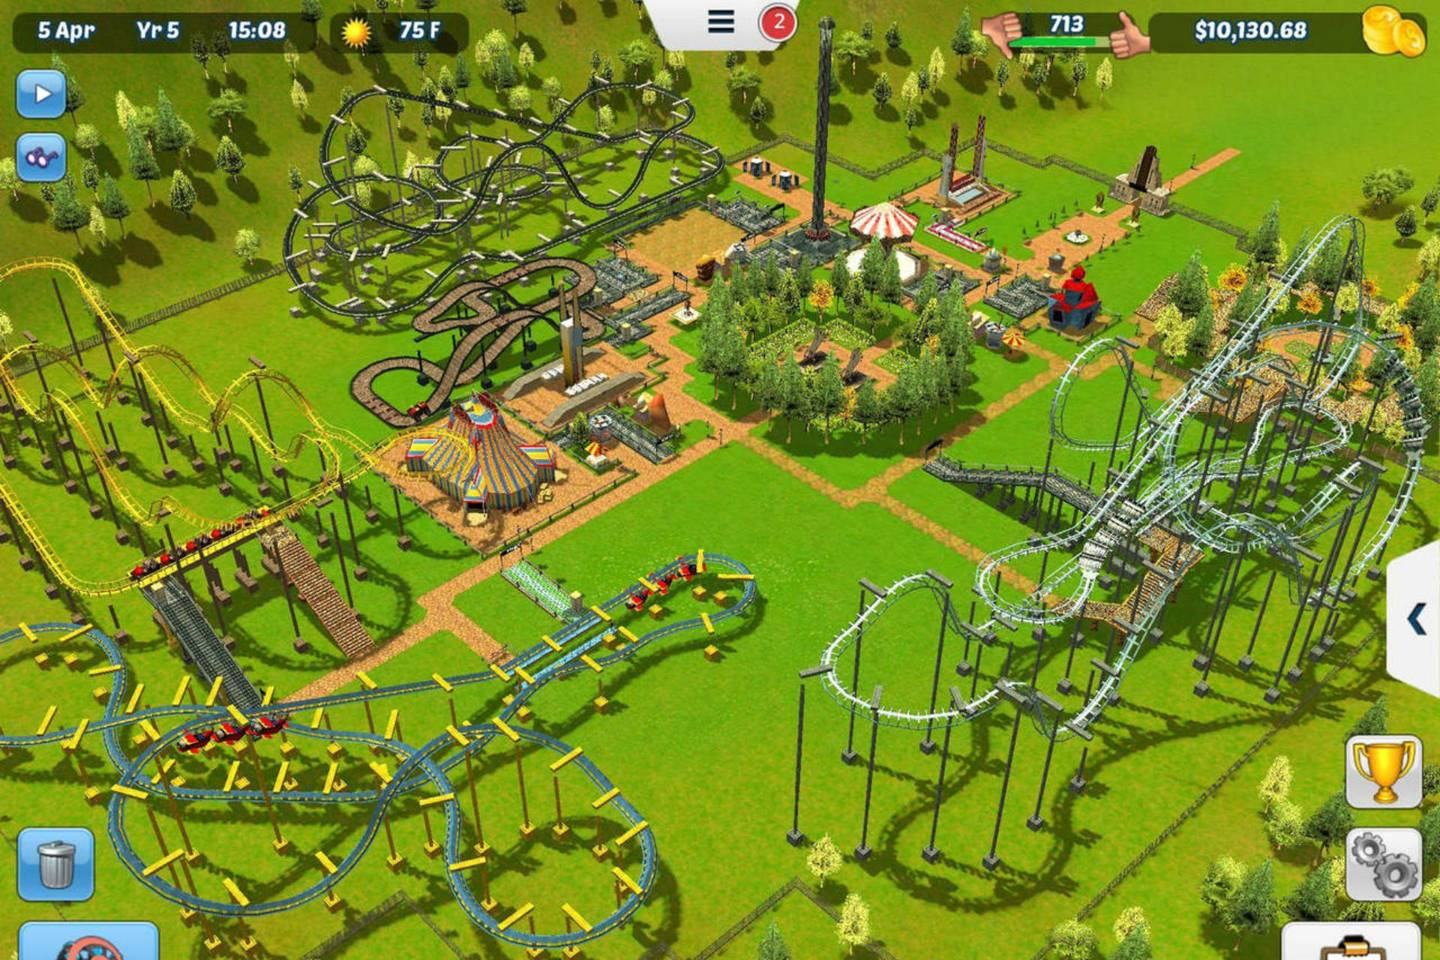 Roller coaster tycoon 3 sex sex tube